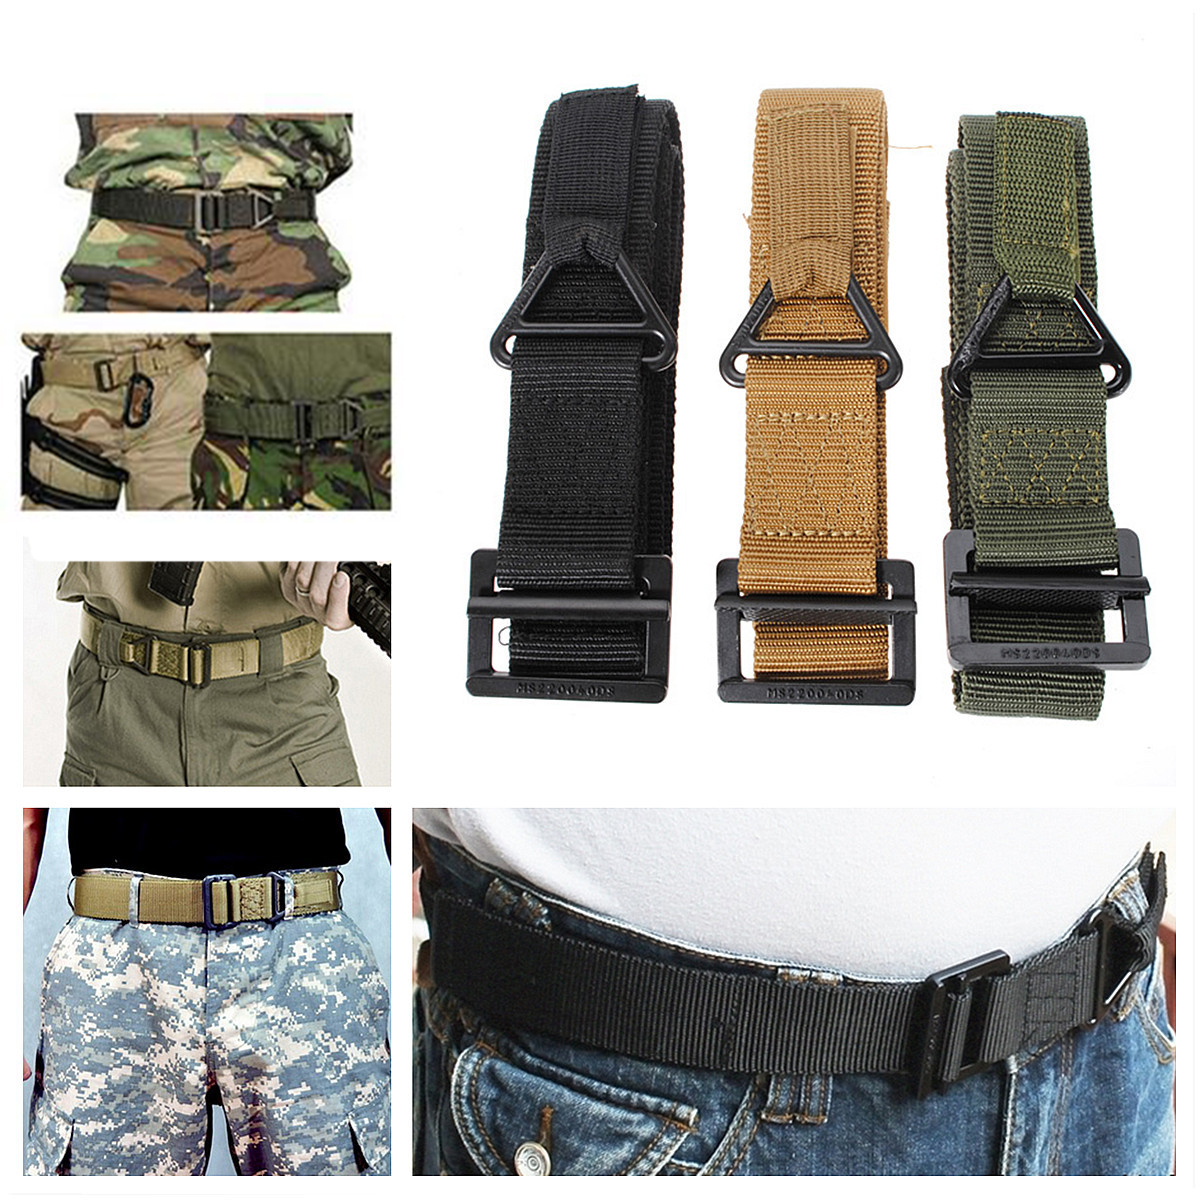 Survival Tactical Waist Belt Strap Military Emergency Rescue Protection Waistband For Hunting